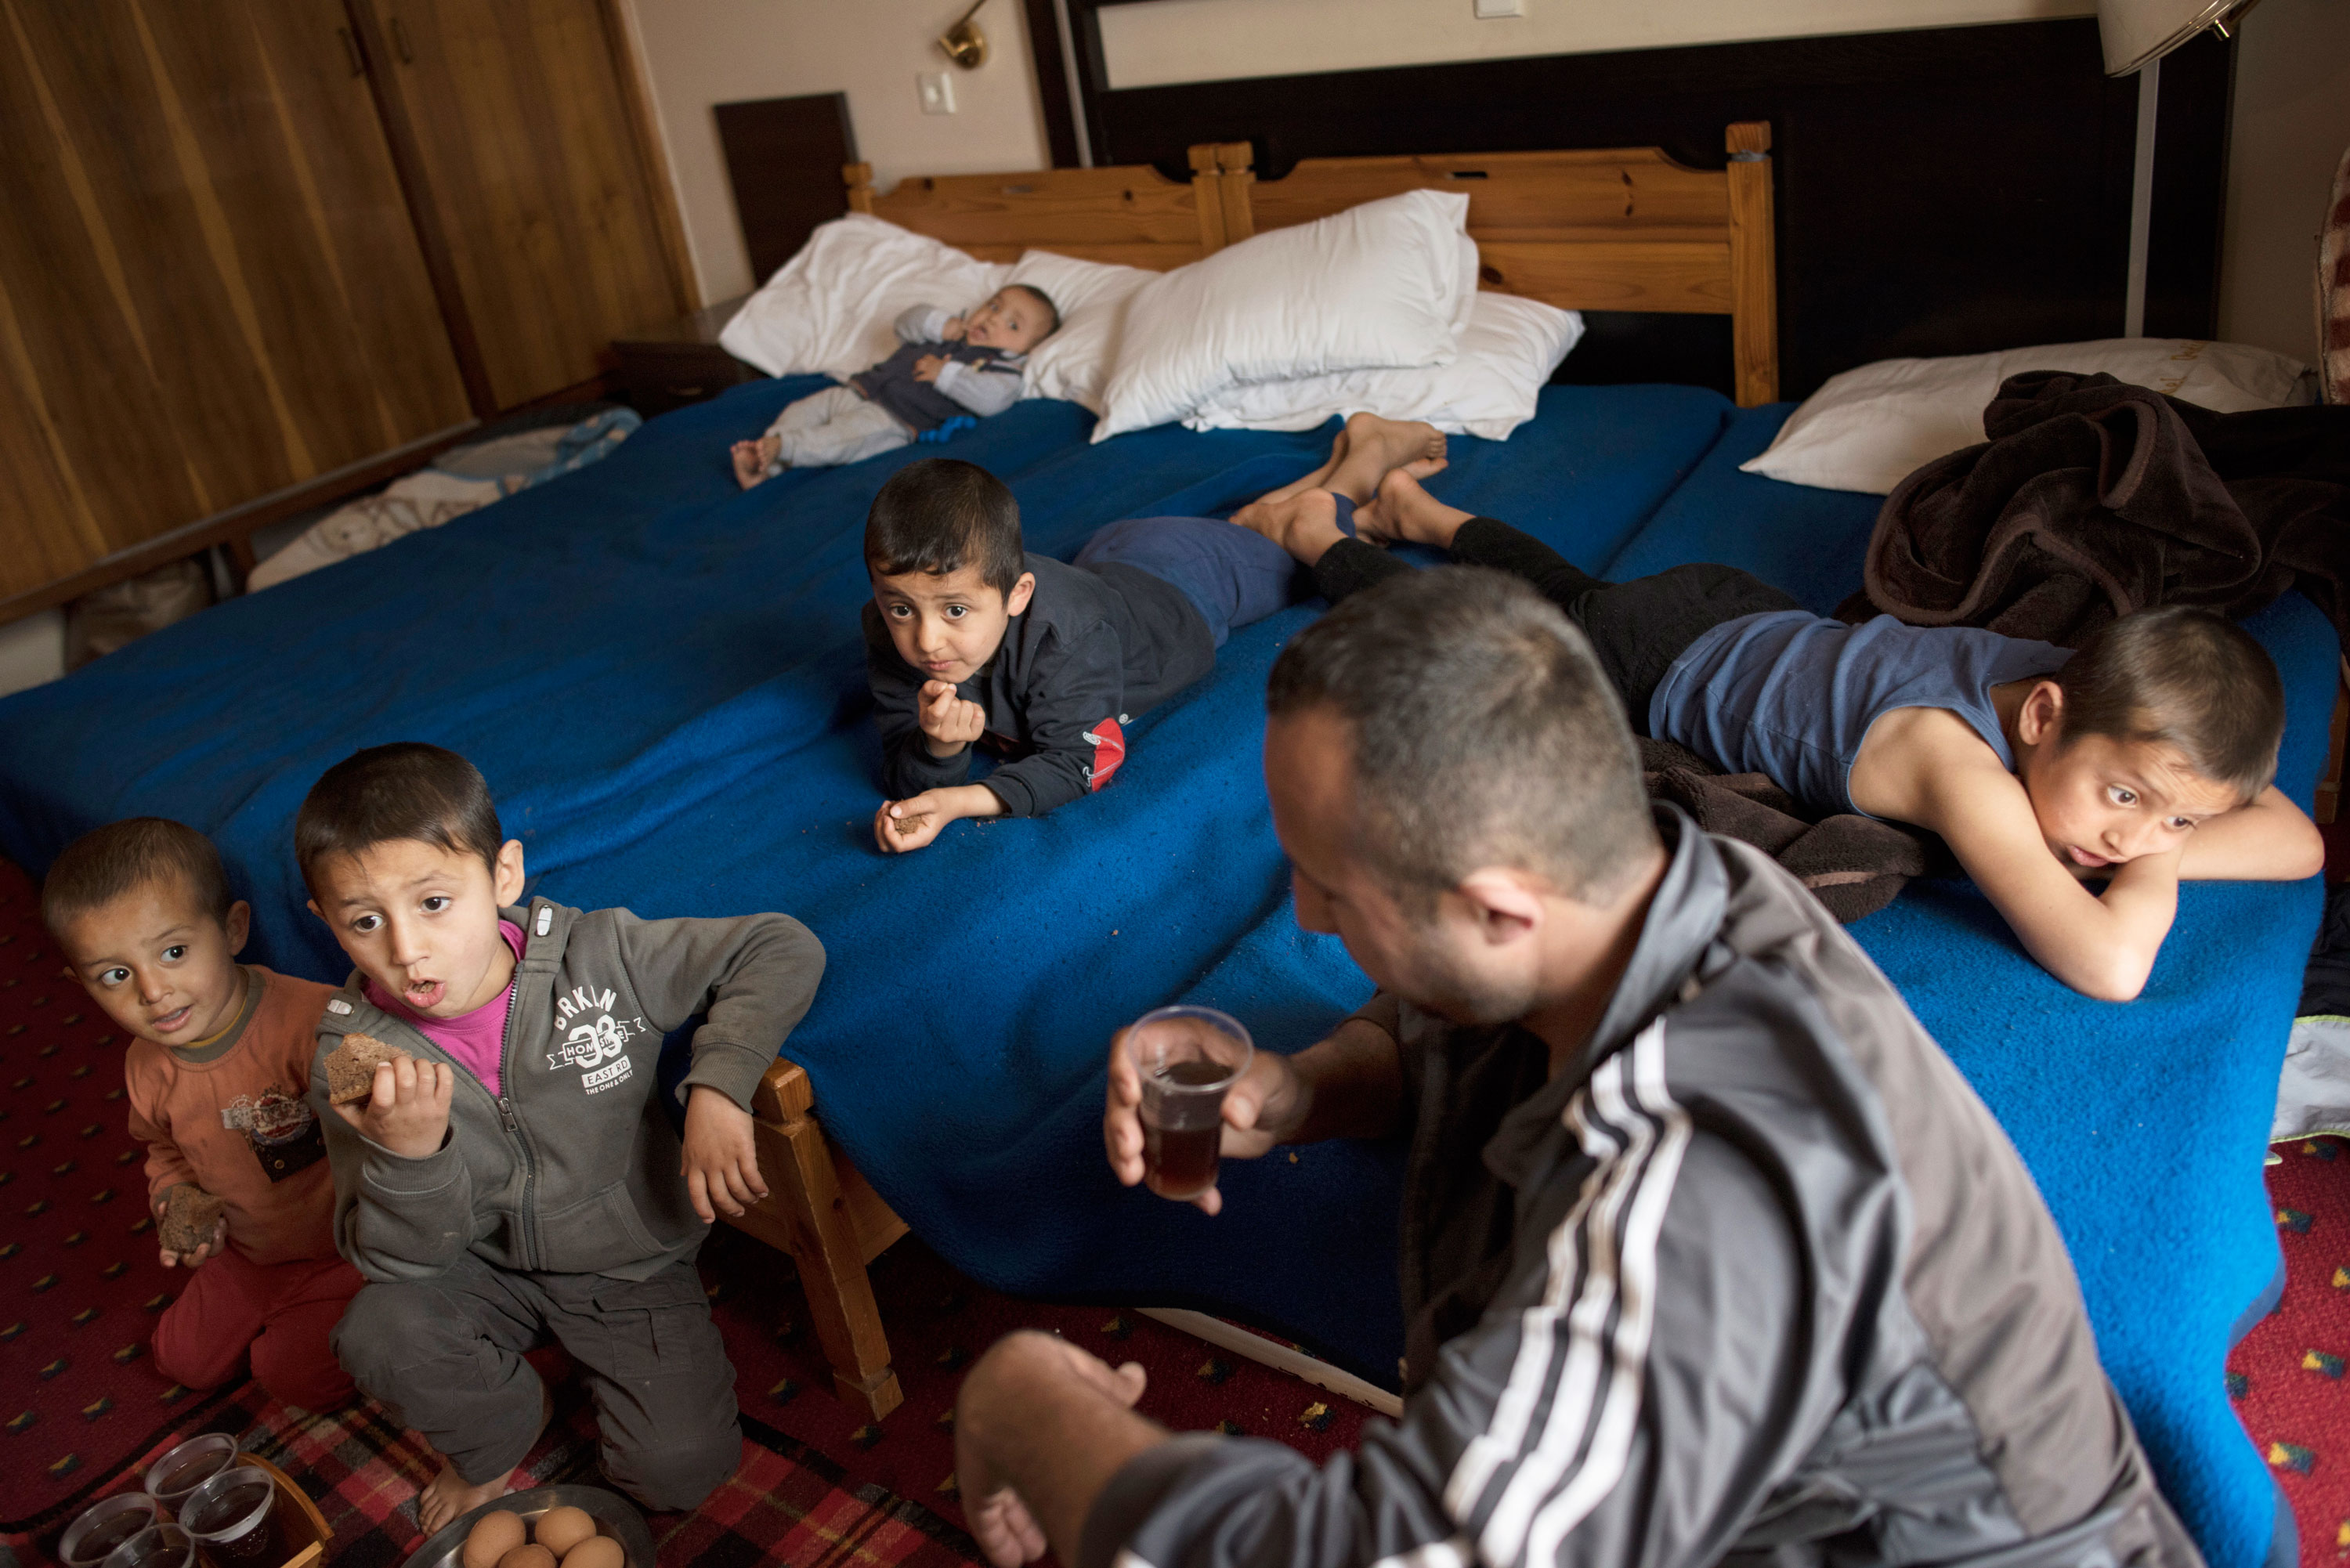 Minhel and the boys watch TV in a hotel room in Kastoria, Greece. Their lives are still in limbo